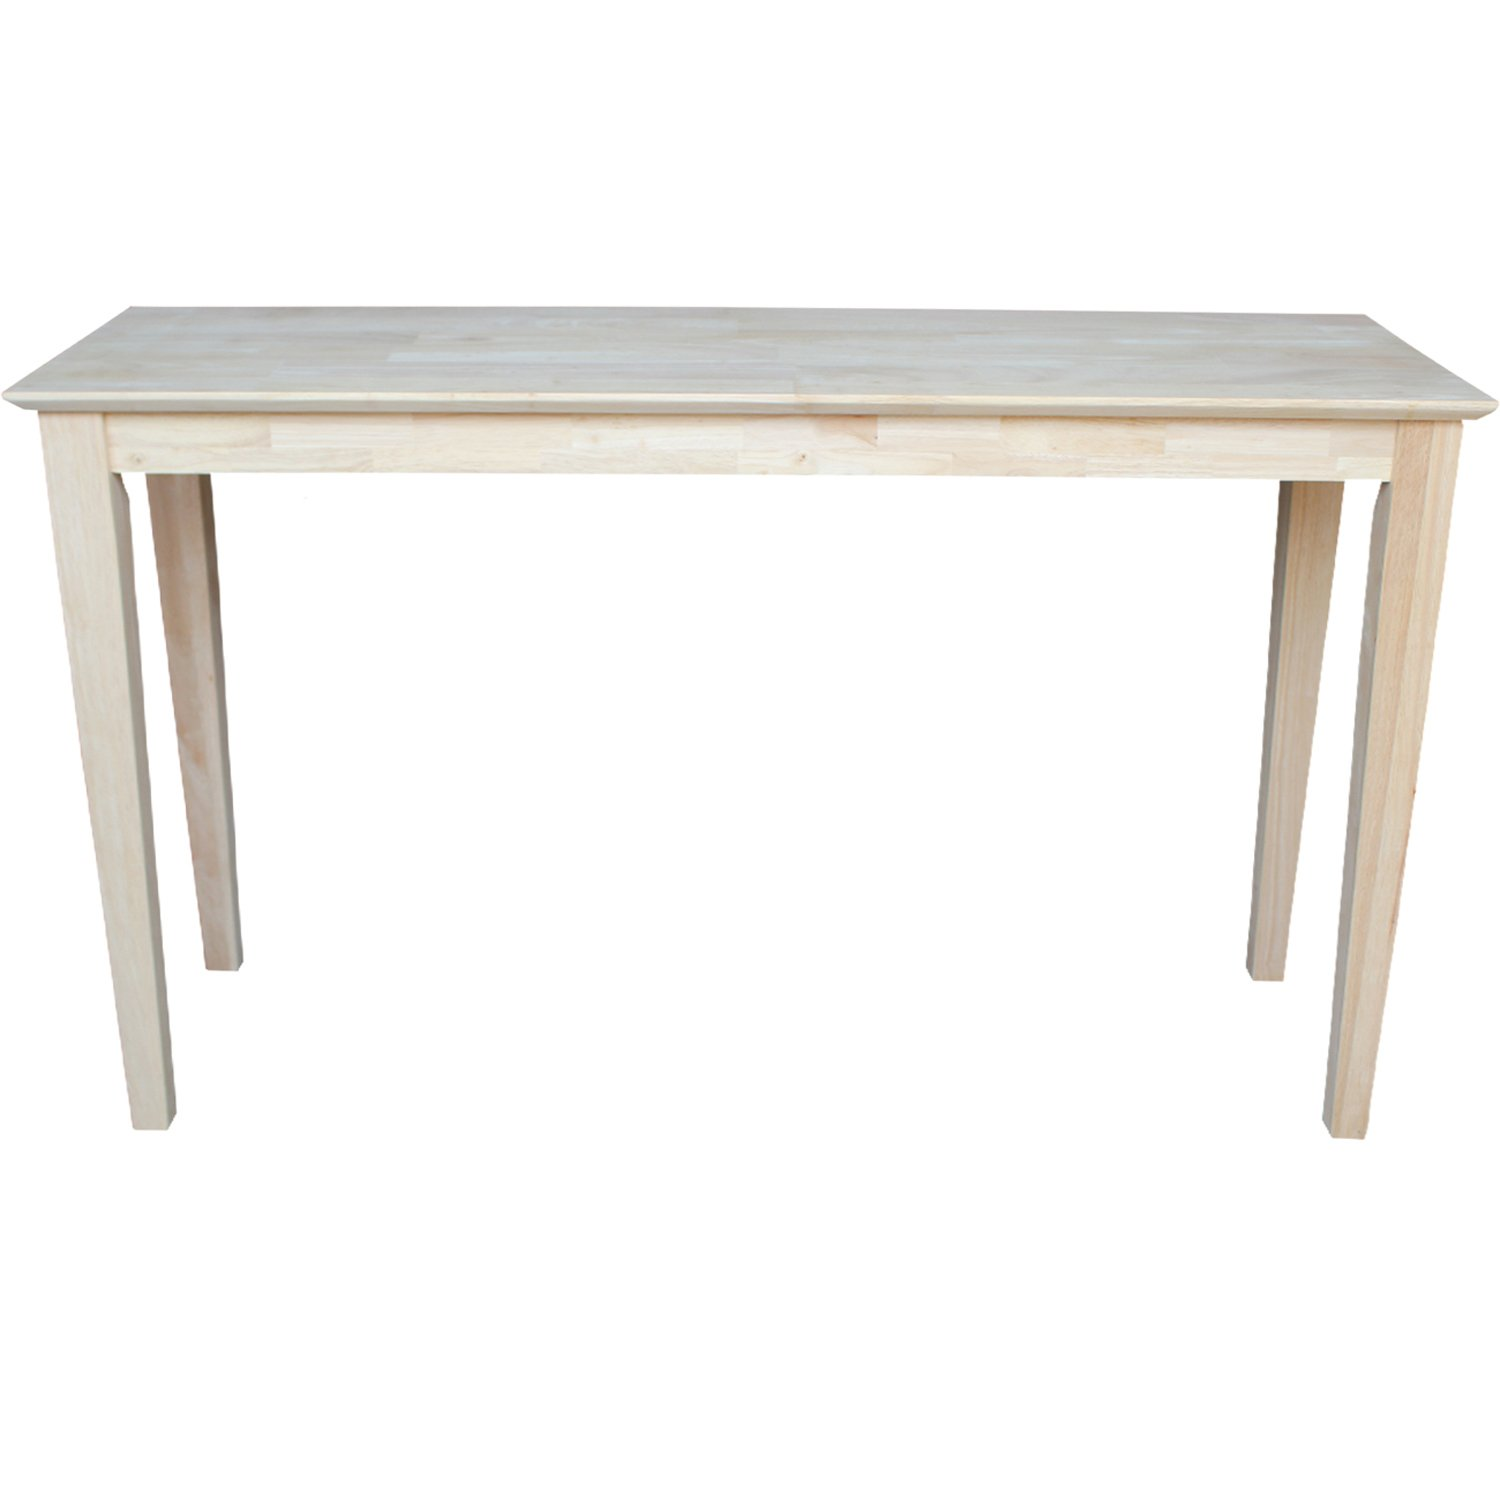 Amazon international concepts ot 9s shaker sofa table amazon international concepts ot 9s shaker sofa table unfinished kitchen dining geotapseo Gallery